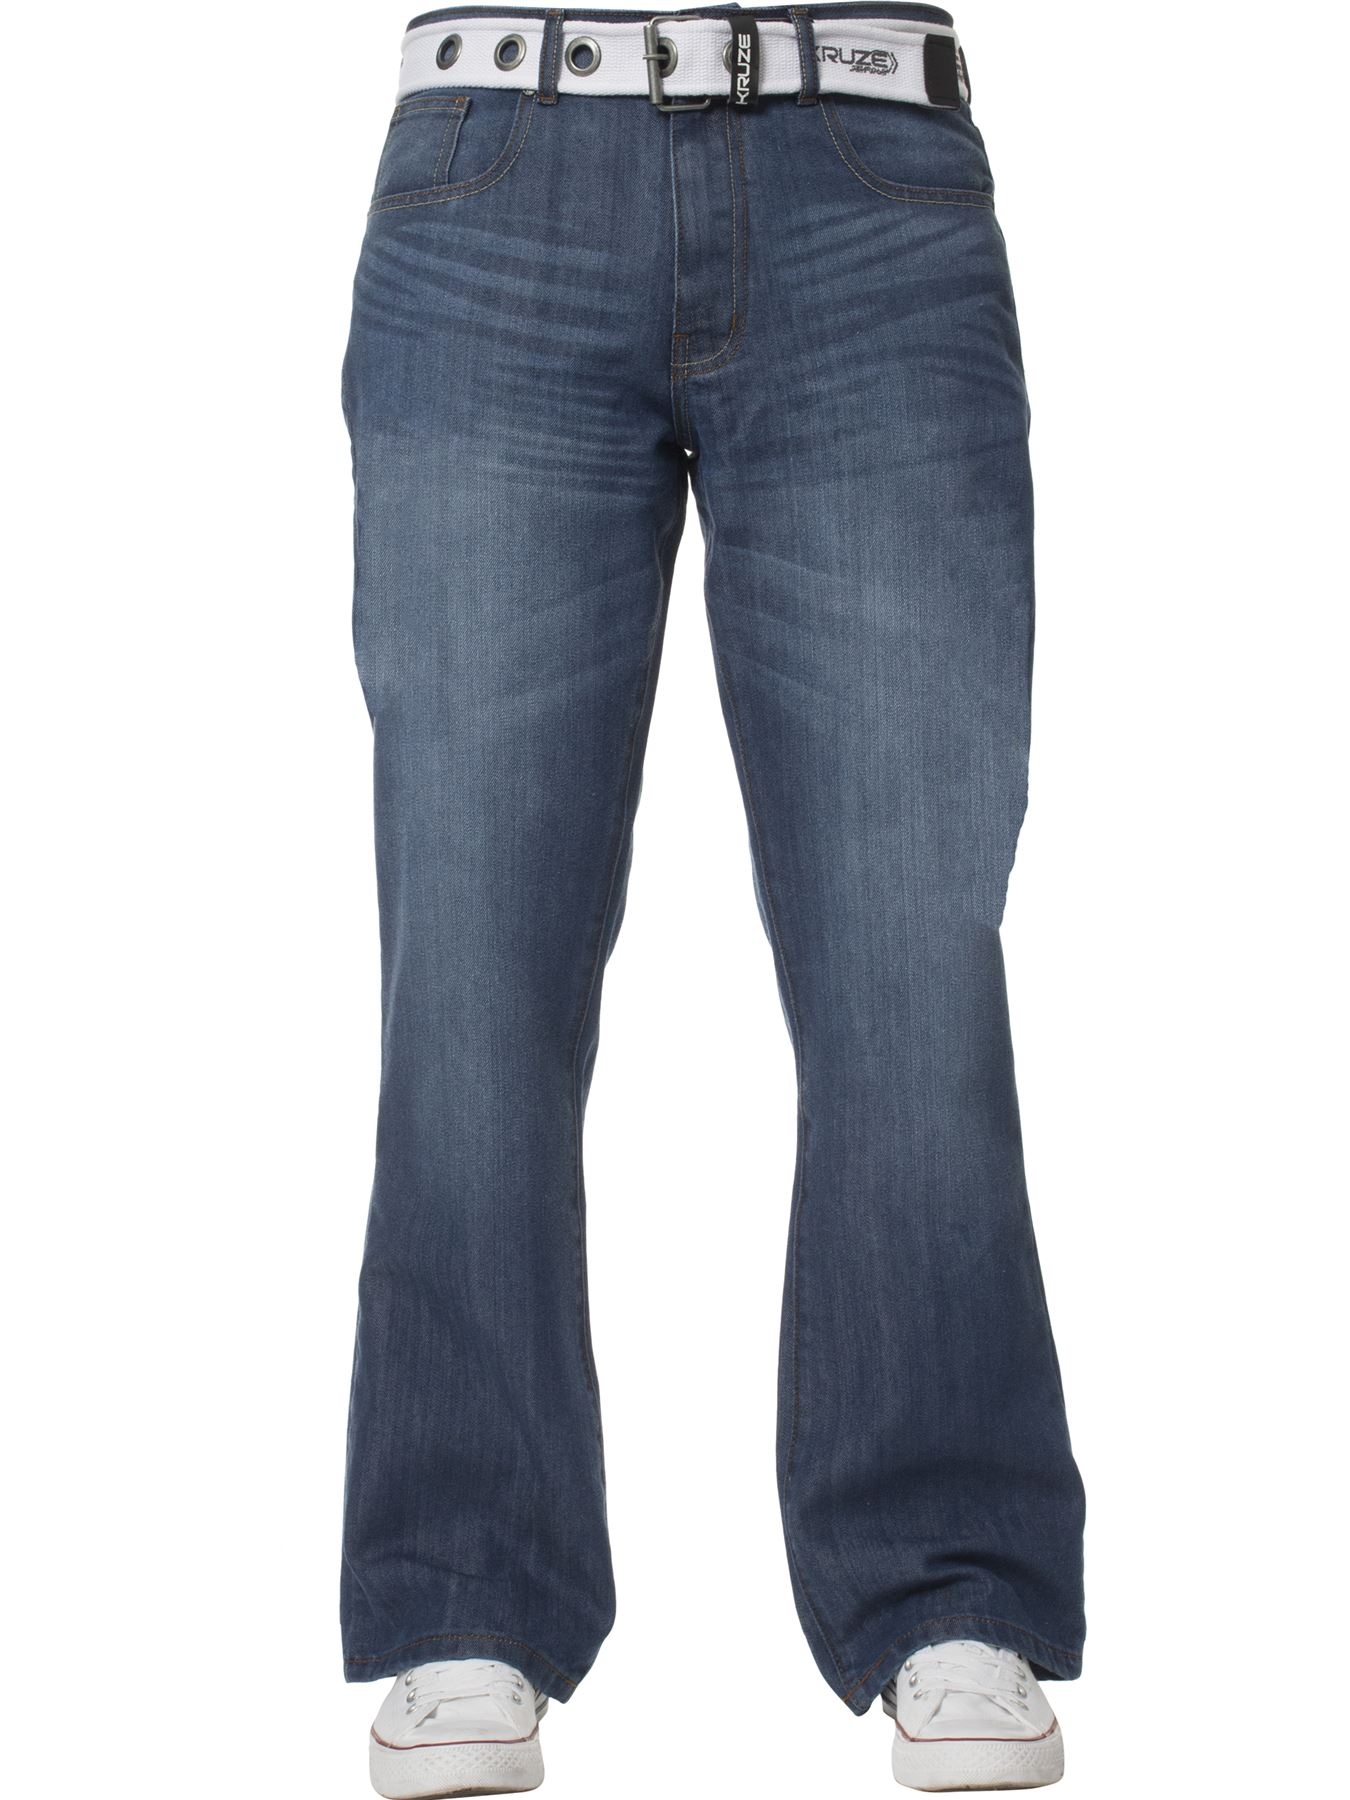 Kruze-Mens-Bootcut-Jeans-Flared-Wide-Leg-Denim-Pants-Big-Tall-King-All-Waists thumbnail 6